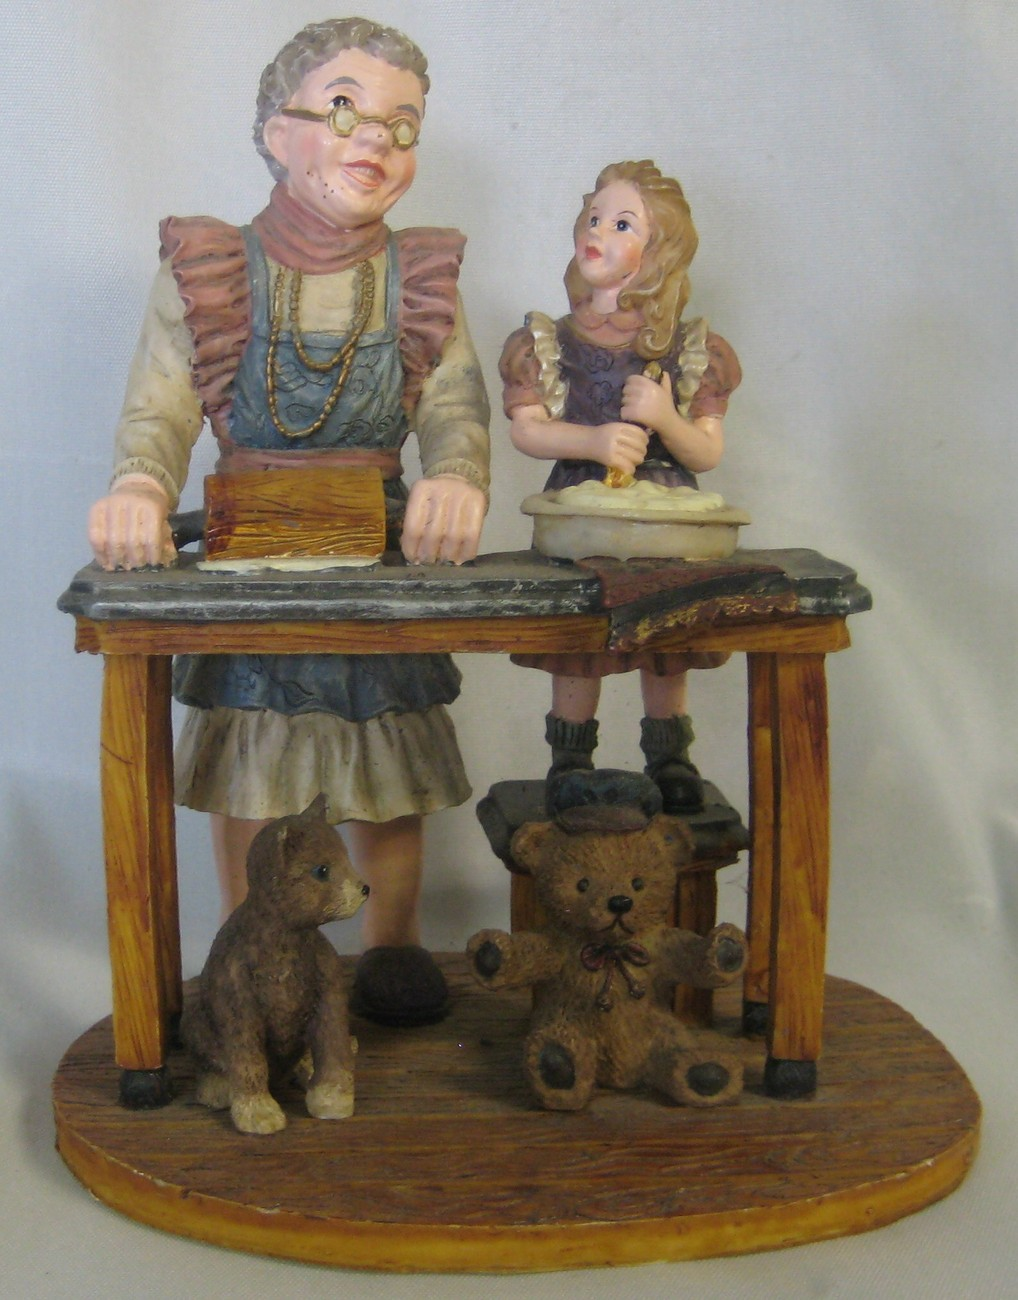 Grandmother and Child Baking by Youngs Detailed Figurine Made Of Resin